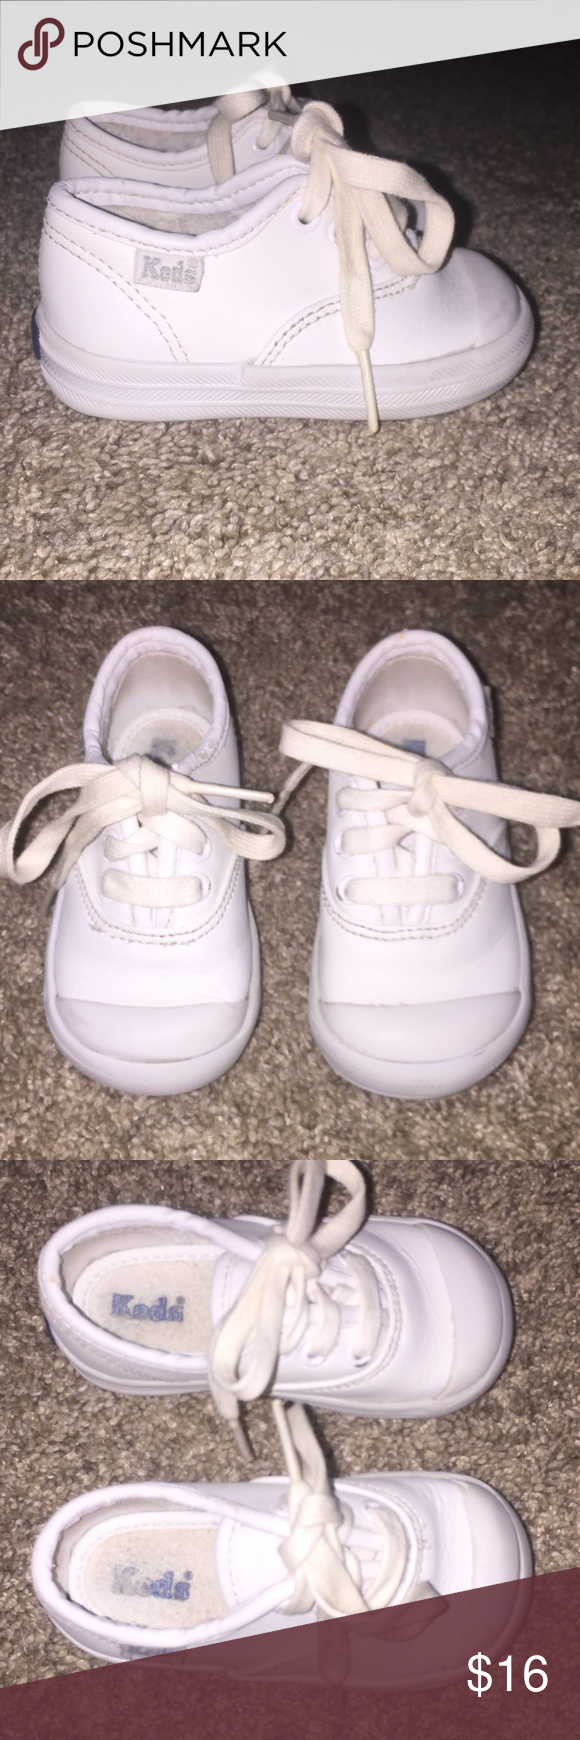 45351544a51448 Cute Baby Keds size 4 Wide sneakers First Walker The Keds Toddler Champion  is just like mom s